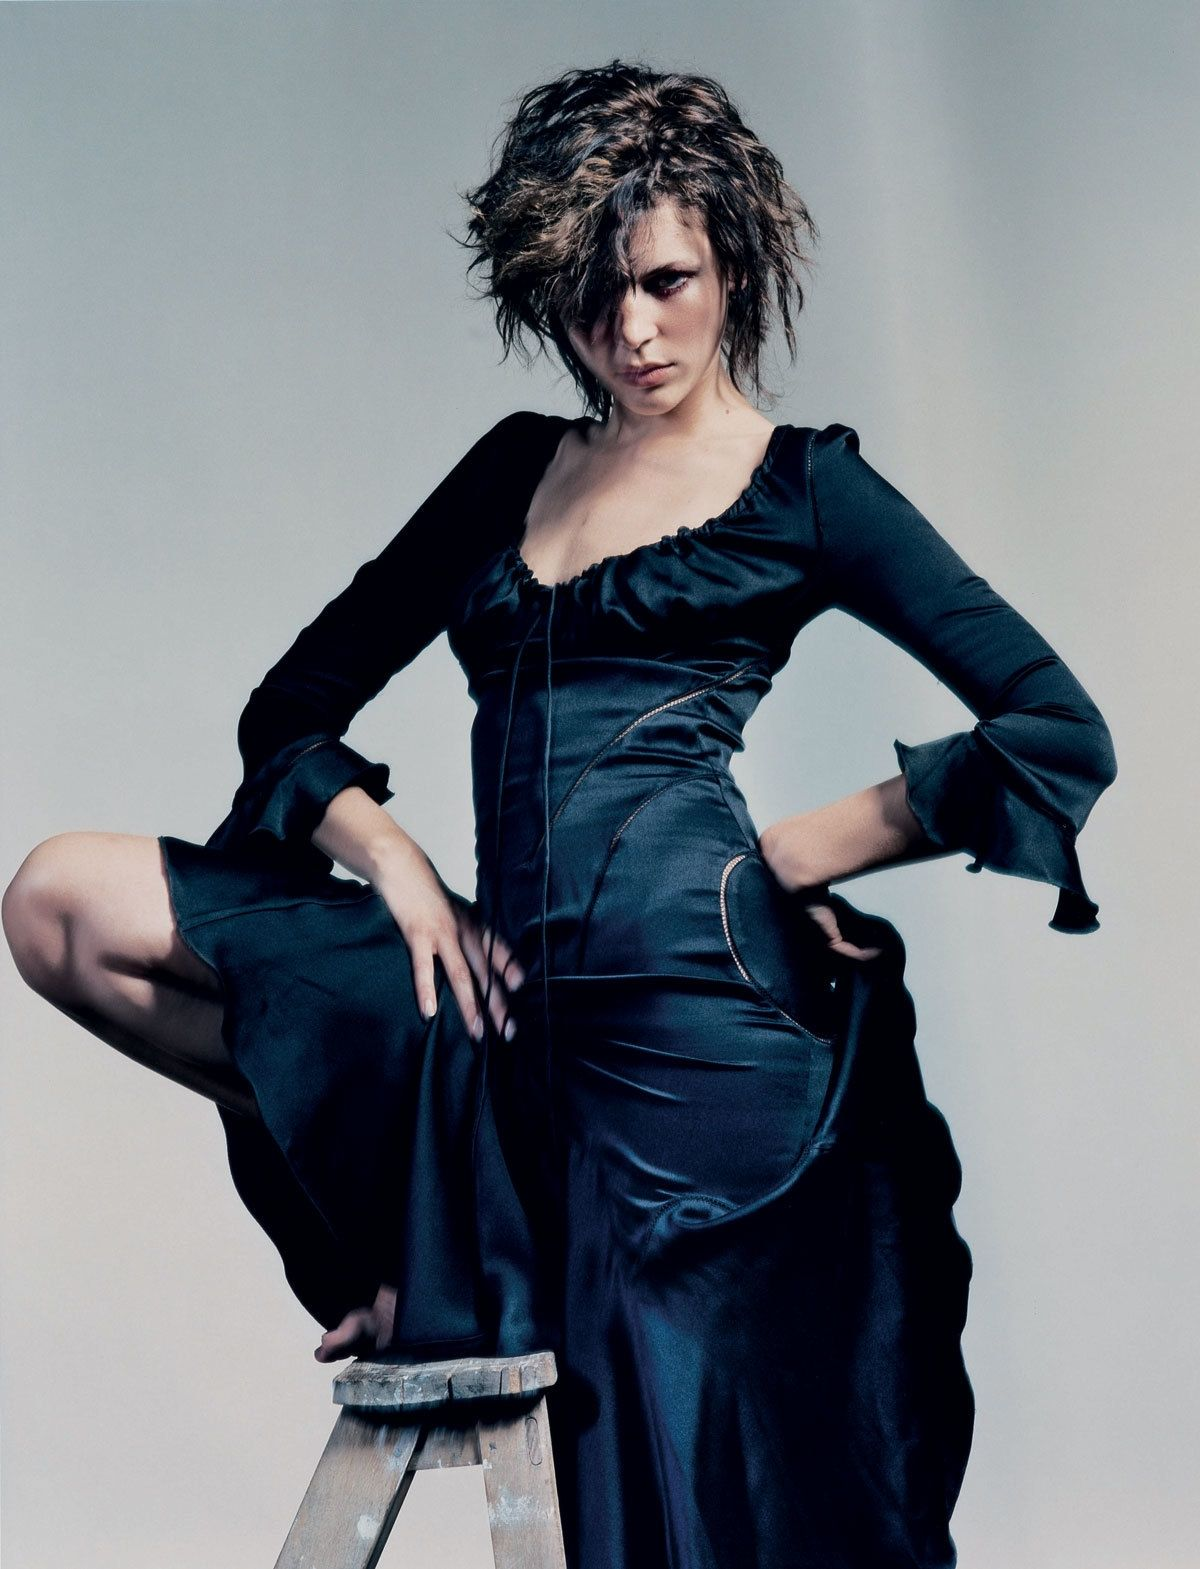 The best of alexander mcqueen in mcqueen dresses and the emotions